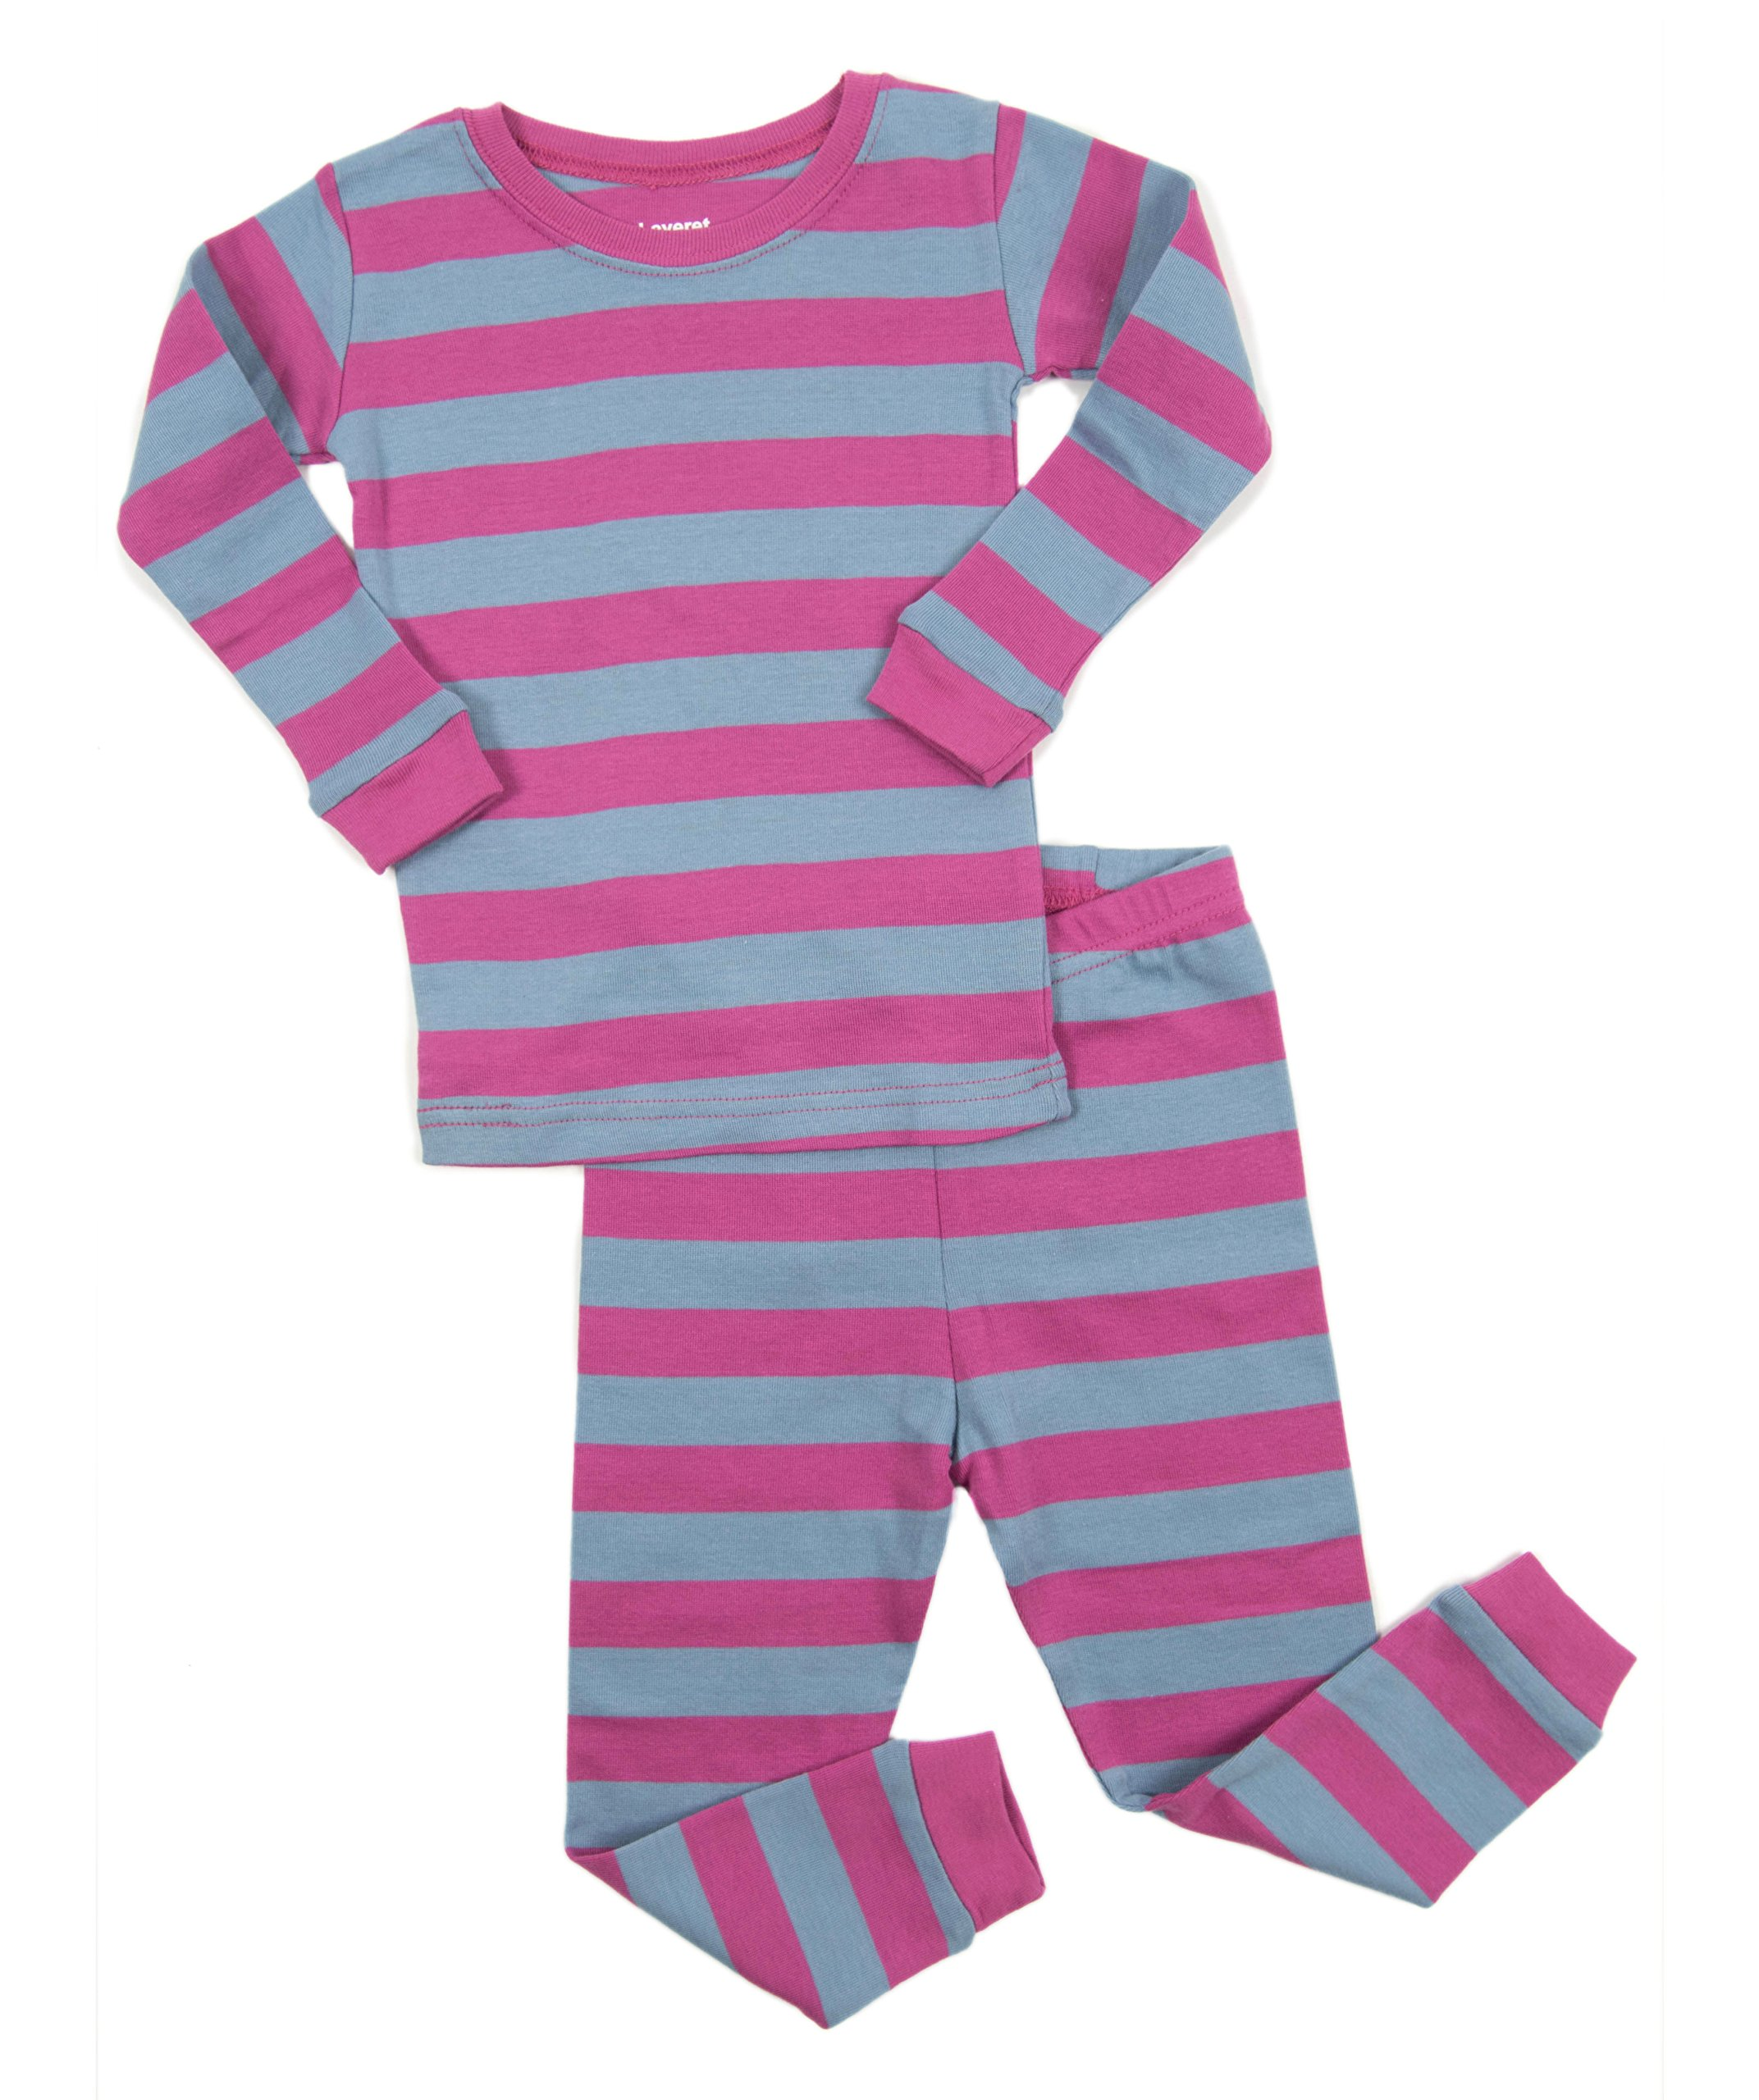 dc565490be Leveret Striped Kids   Toddler Girls Pajamas 2 Piece Pjs Set 100% Cotton  Sleepwear (